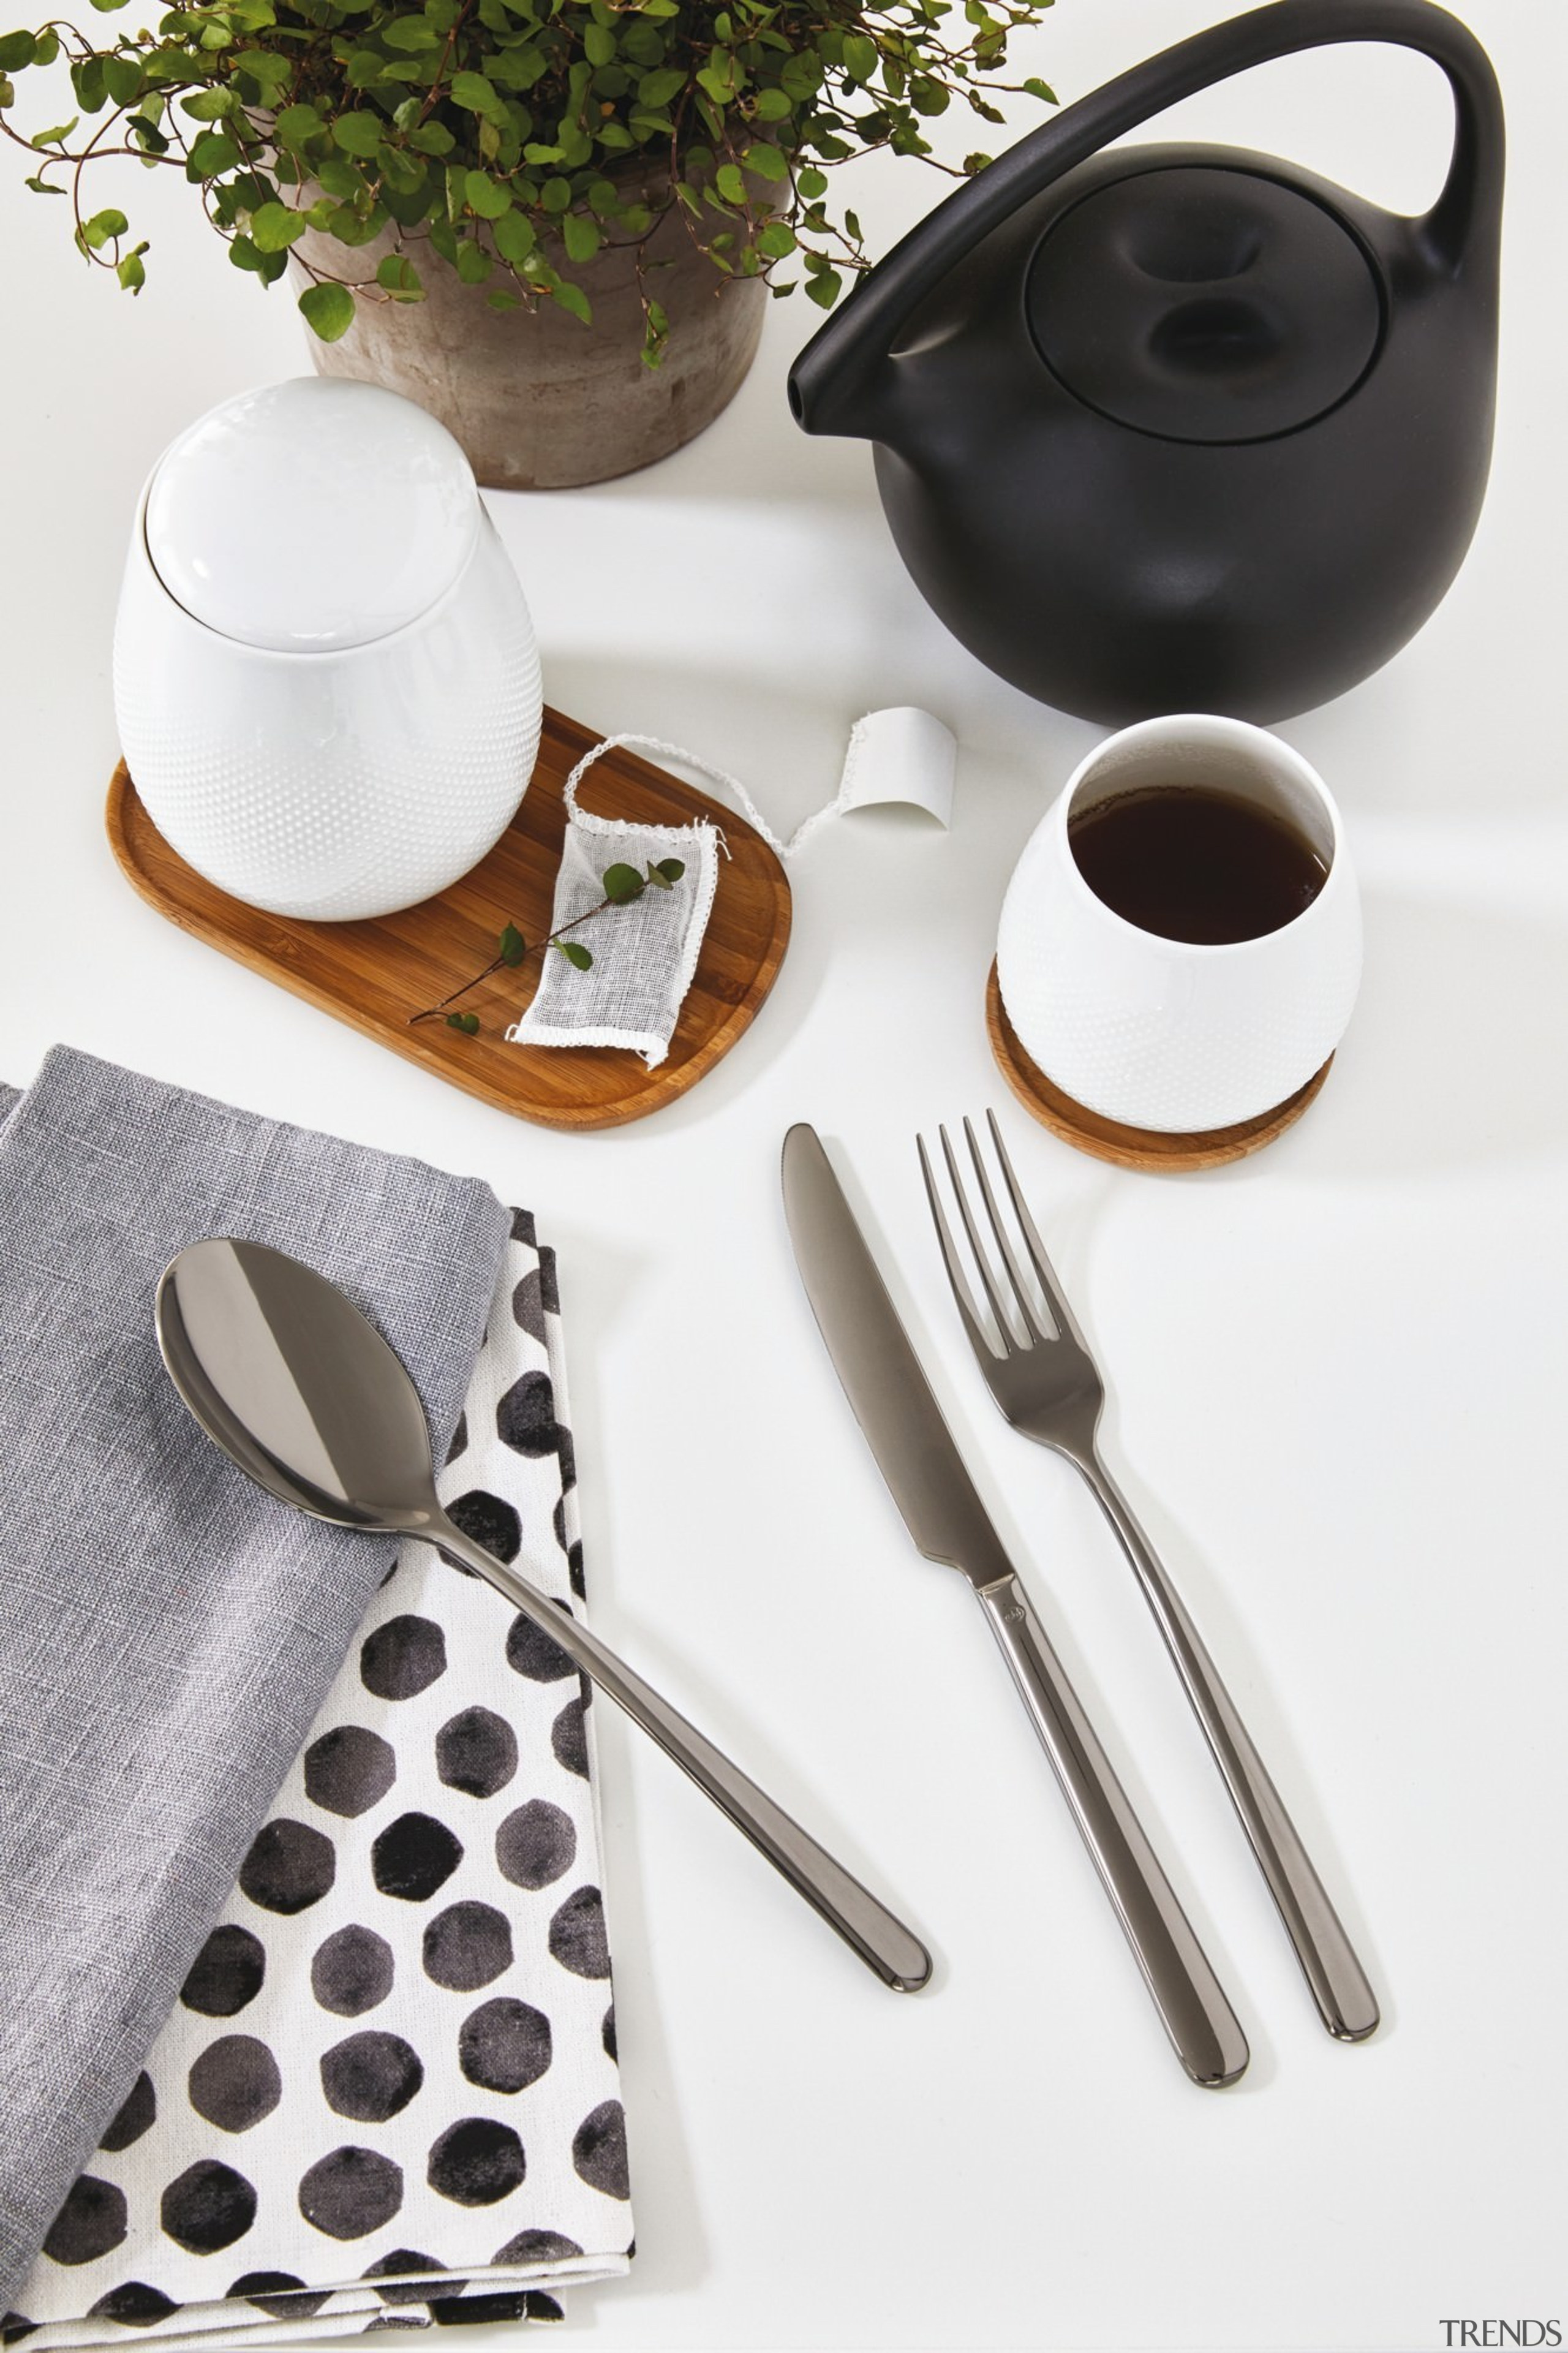 A selection from The Studio of Tableware - ceramic, cutlery, fork, product, product design, spoon, tableware, white